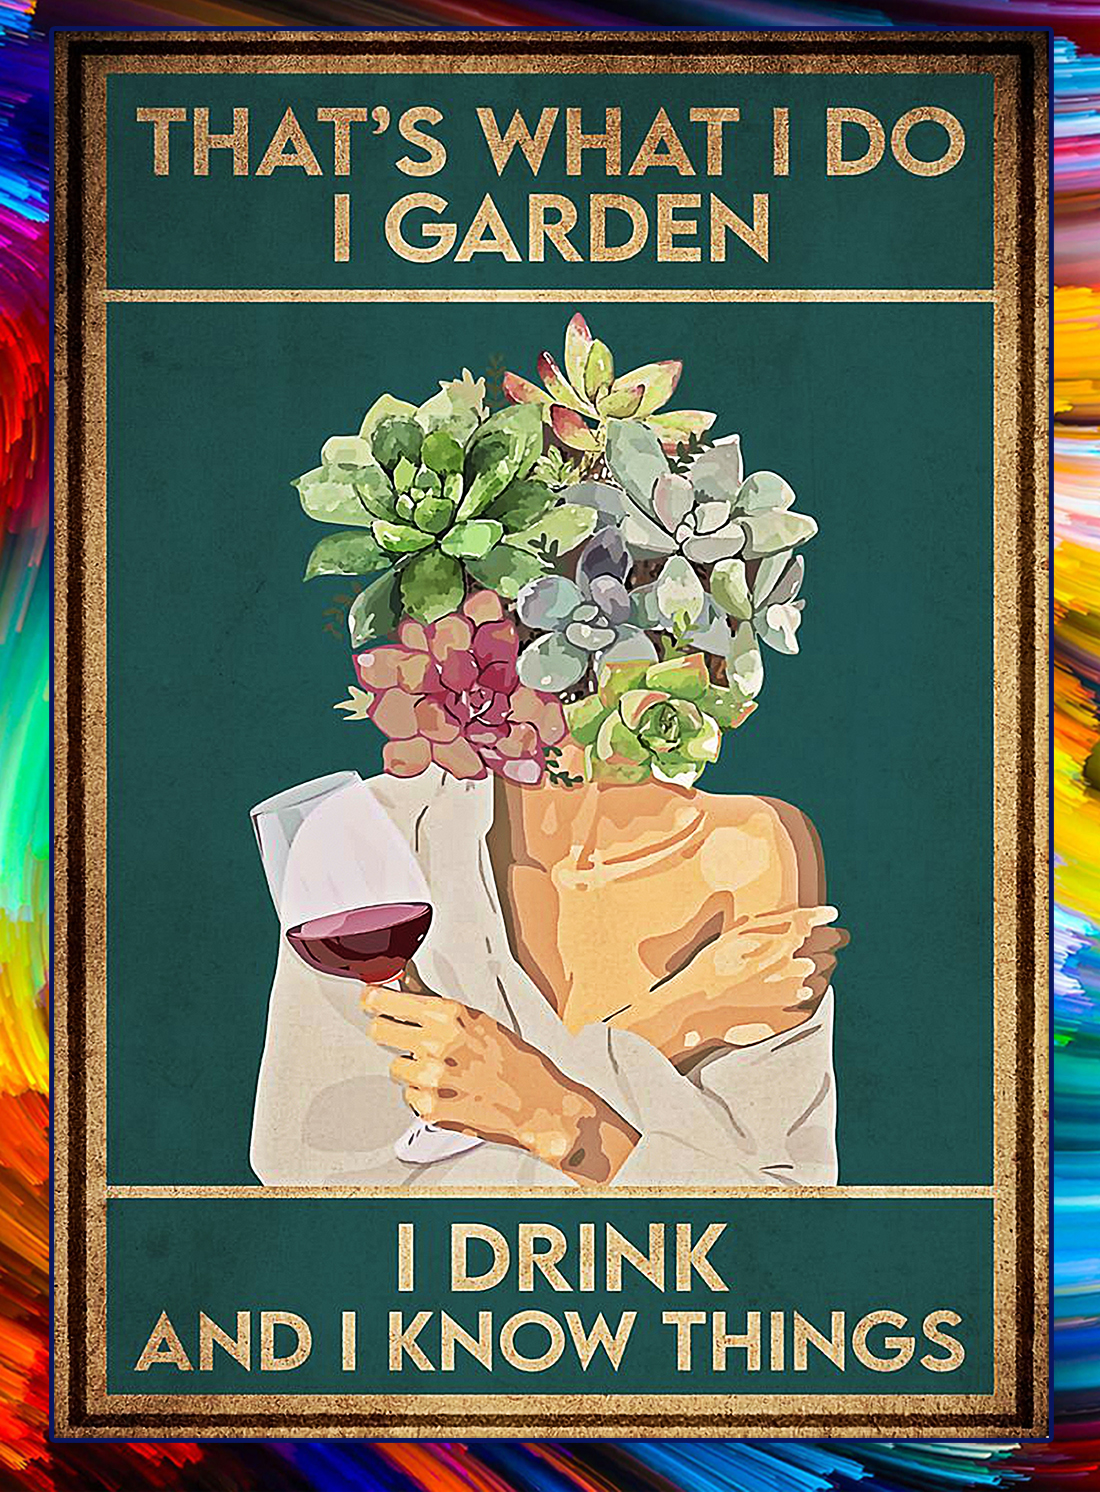 Pot head that's what I do I garden I drink and I know things poster - A4